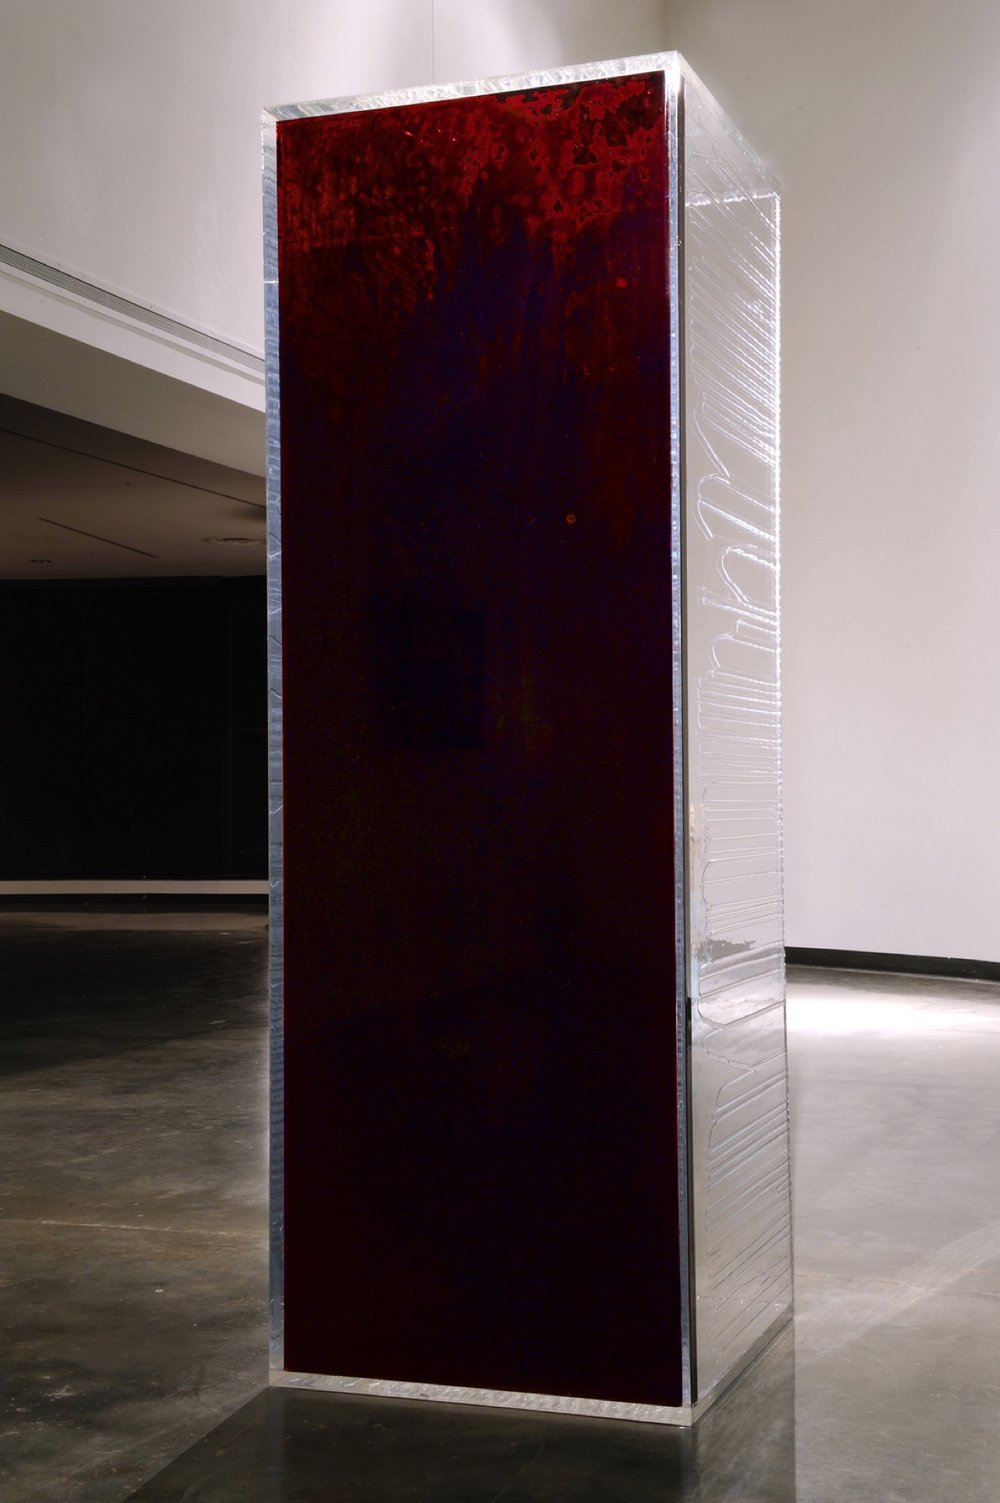 "Blood Mirror, 2015-present 84 x 28 x 28"" 59 human blood donations, blood of Oliver Anene, Blue Bayer, Howard Grossman, M.D., Kelsey Louie, Lawrence D. Mass, M.D., Reverend John Moody, Loren Rice, Ty Spicha, CPT Anthony Woods, 50 PrEP advocates, preserved in UV resin Medical Supervisor, Howard Grossman, M.D. Installation view, American University Museum at the Katzen Arts Center, Washington, DC, 2015"